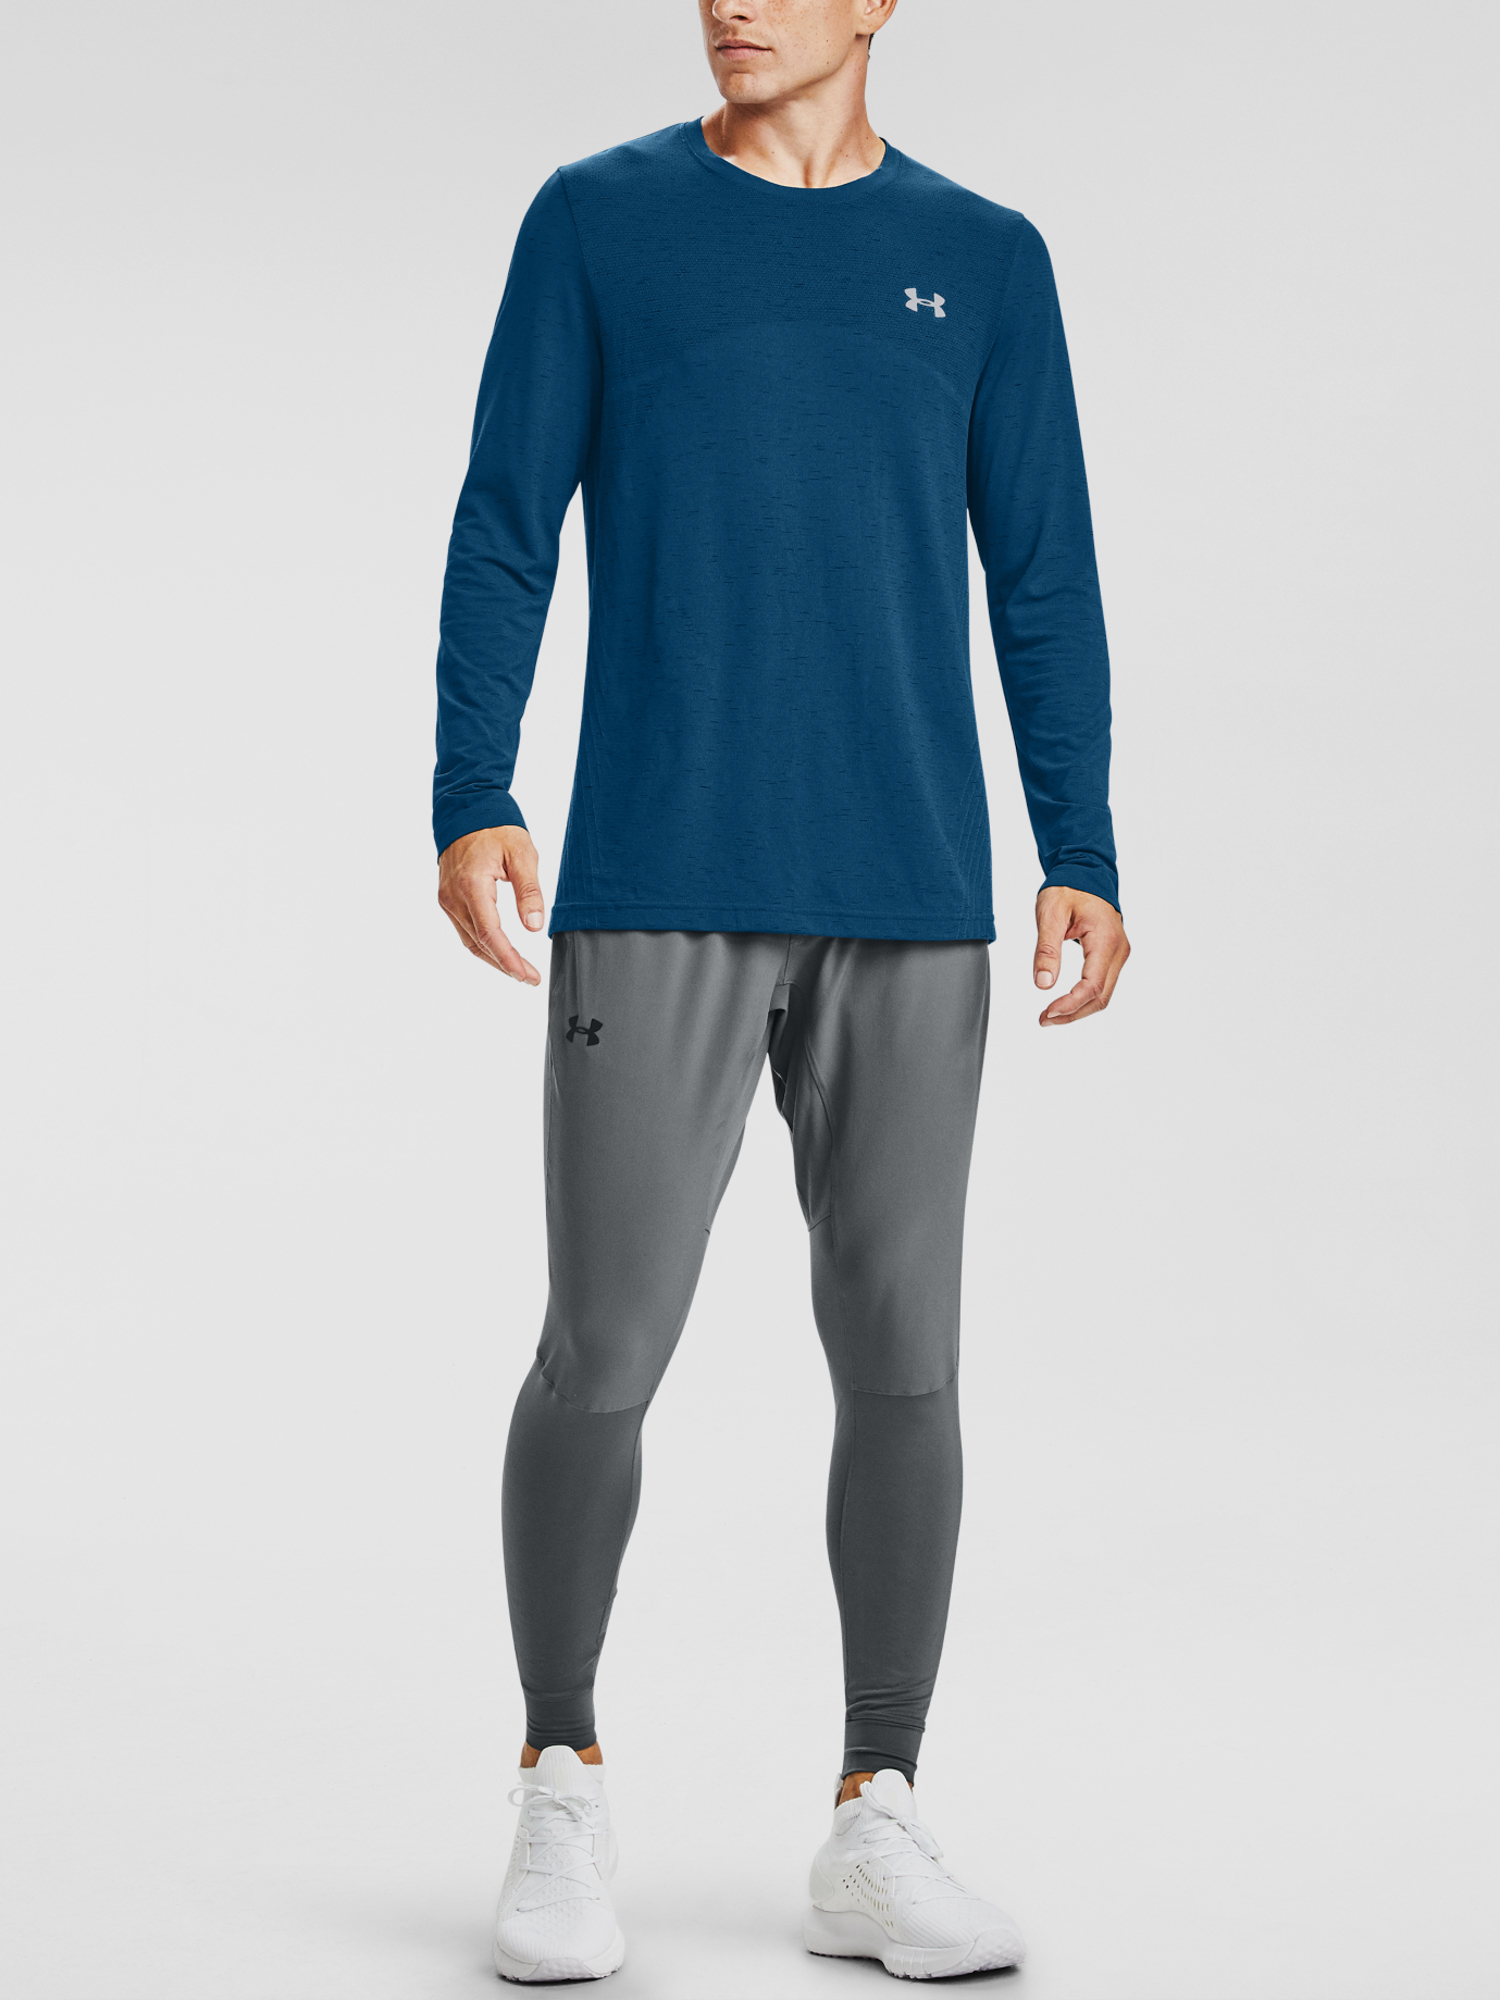 Tričko Under Armour UA Seamless LS-BLU (3)